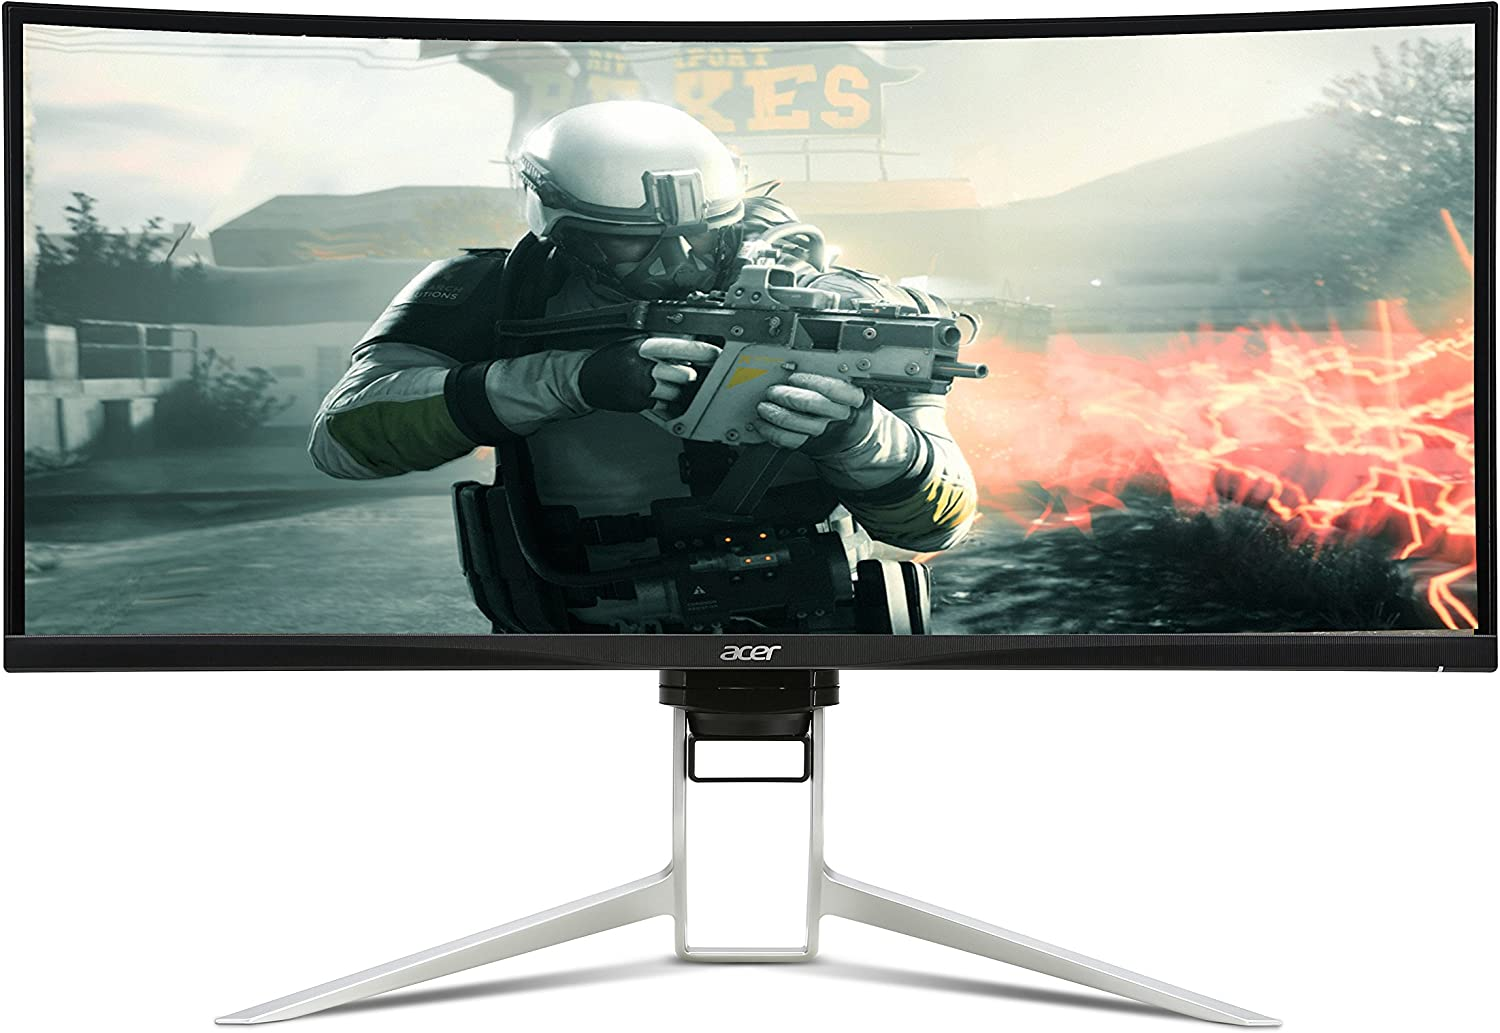 Acer Predator XR100CKP Curved Monitor 100 cm (100 Inch Ultra Wide QHD) 100x  HDMI, USB Type-C, DisplayPort, 100ms Response Time, Resolution 100,1001000 x 10,1001000,